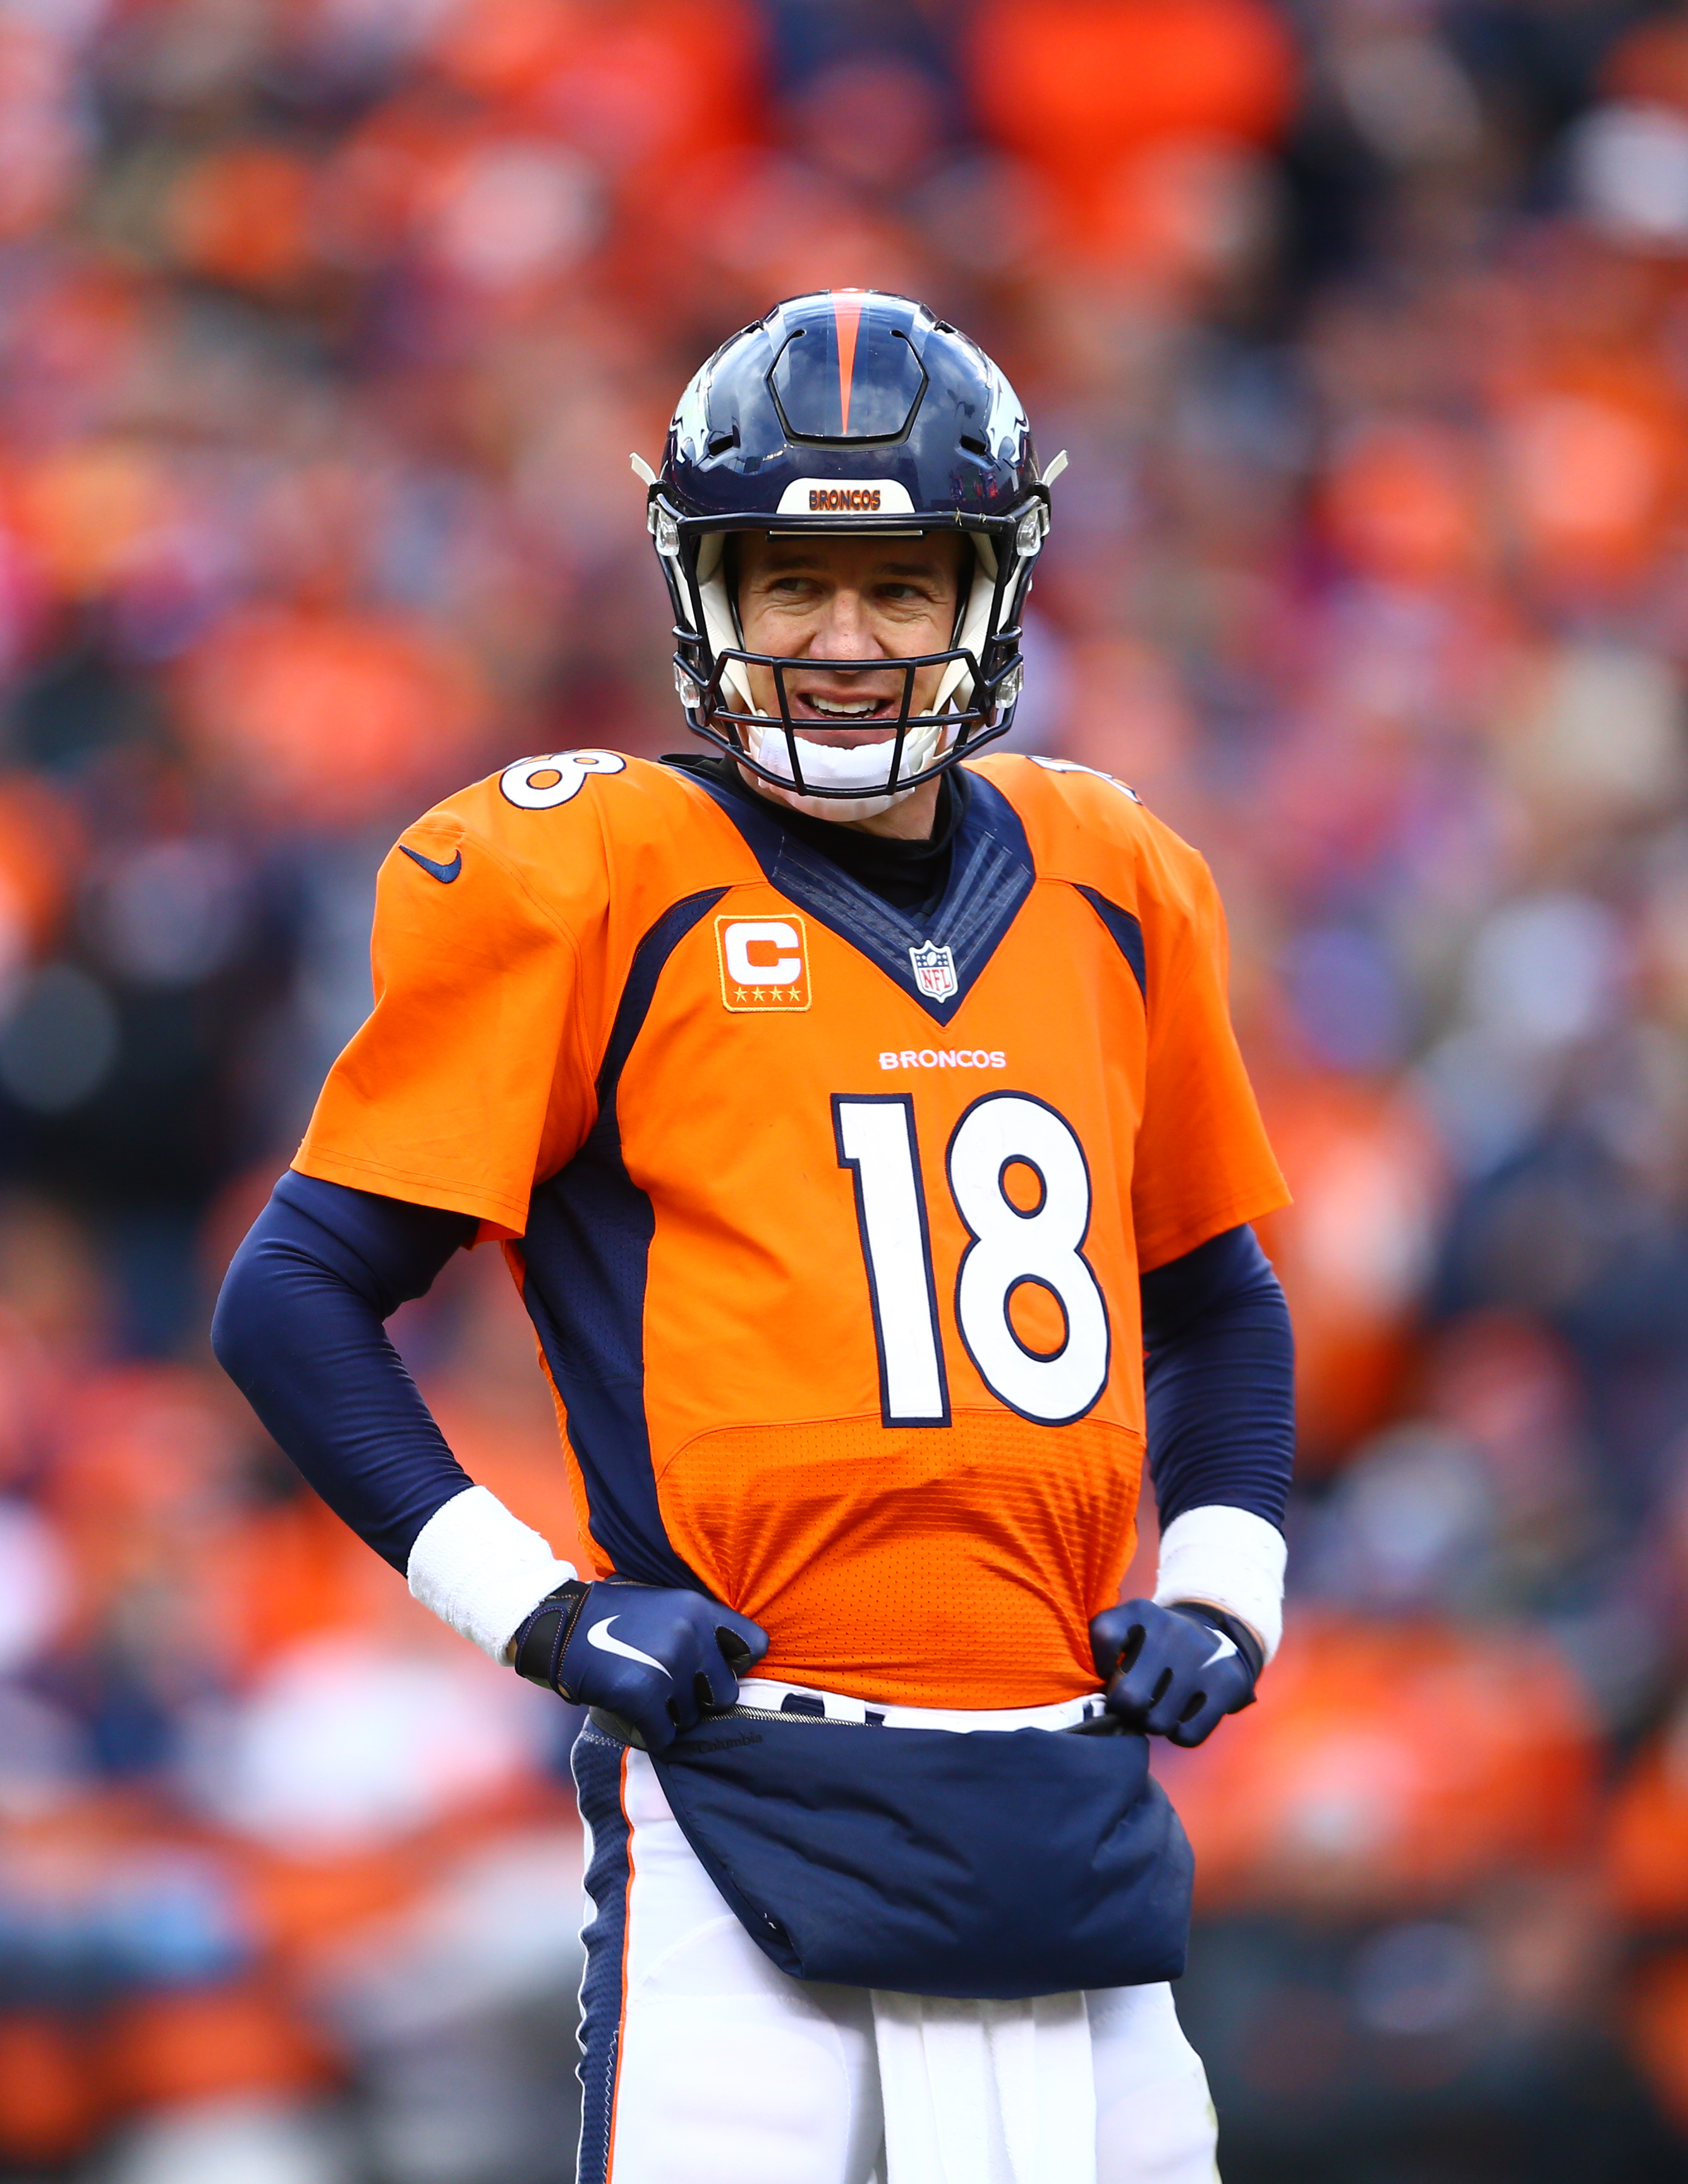 Peyton Manning 2018 player profile game log season stats career stats recent news If you play fantasy sports get breaking news and immerse yourself in the